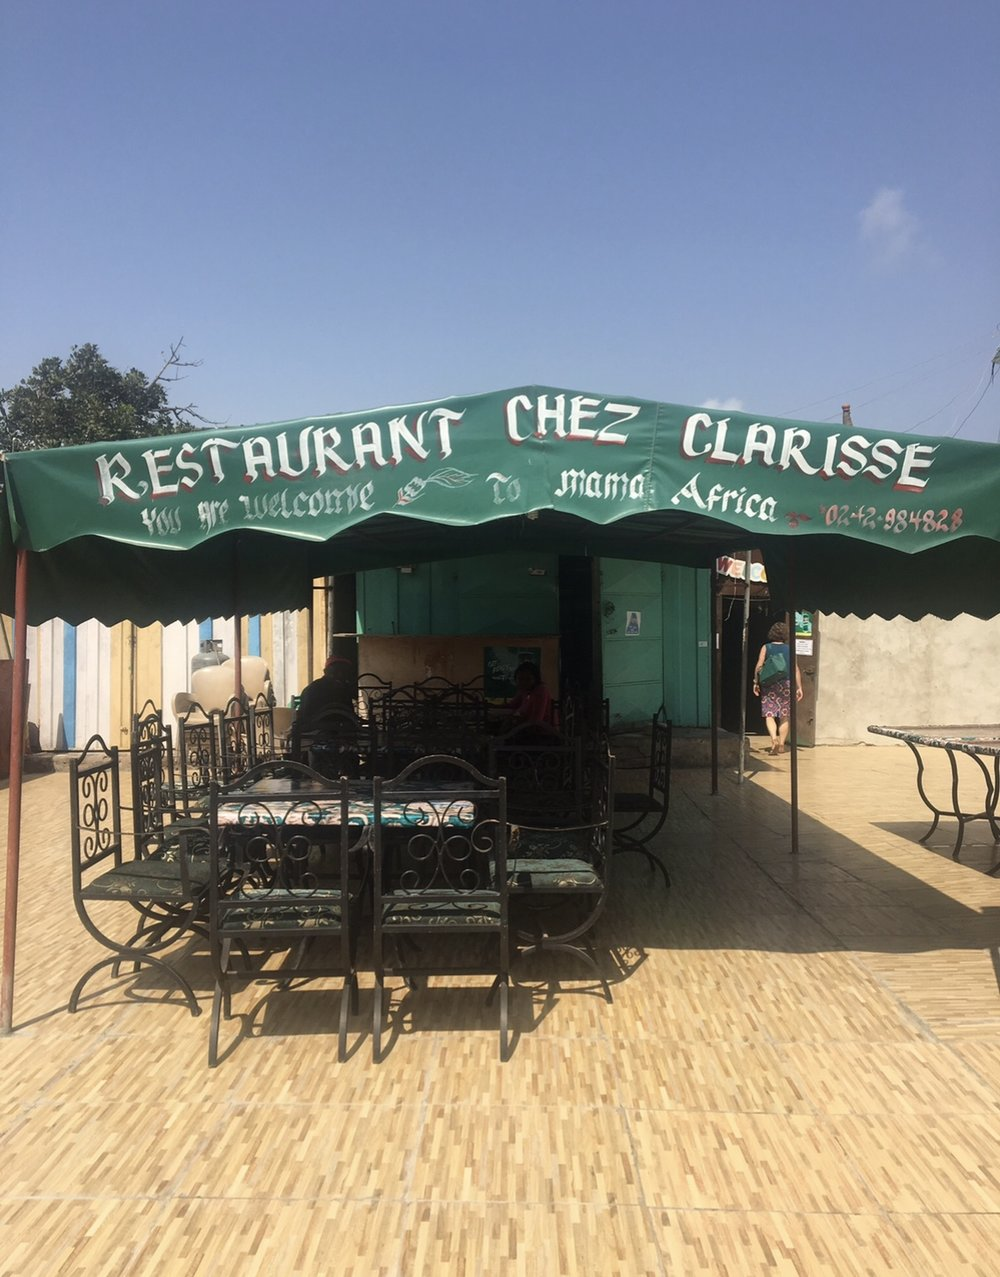 If you're in Accra, go to Chez Clarisse! The food is soooo good.